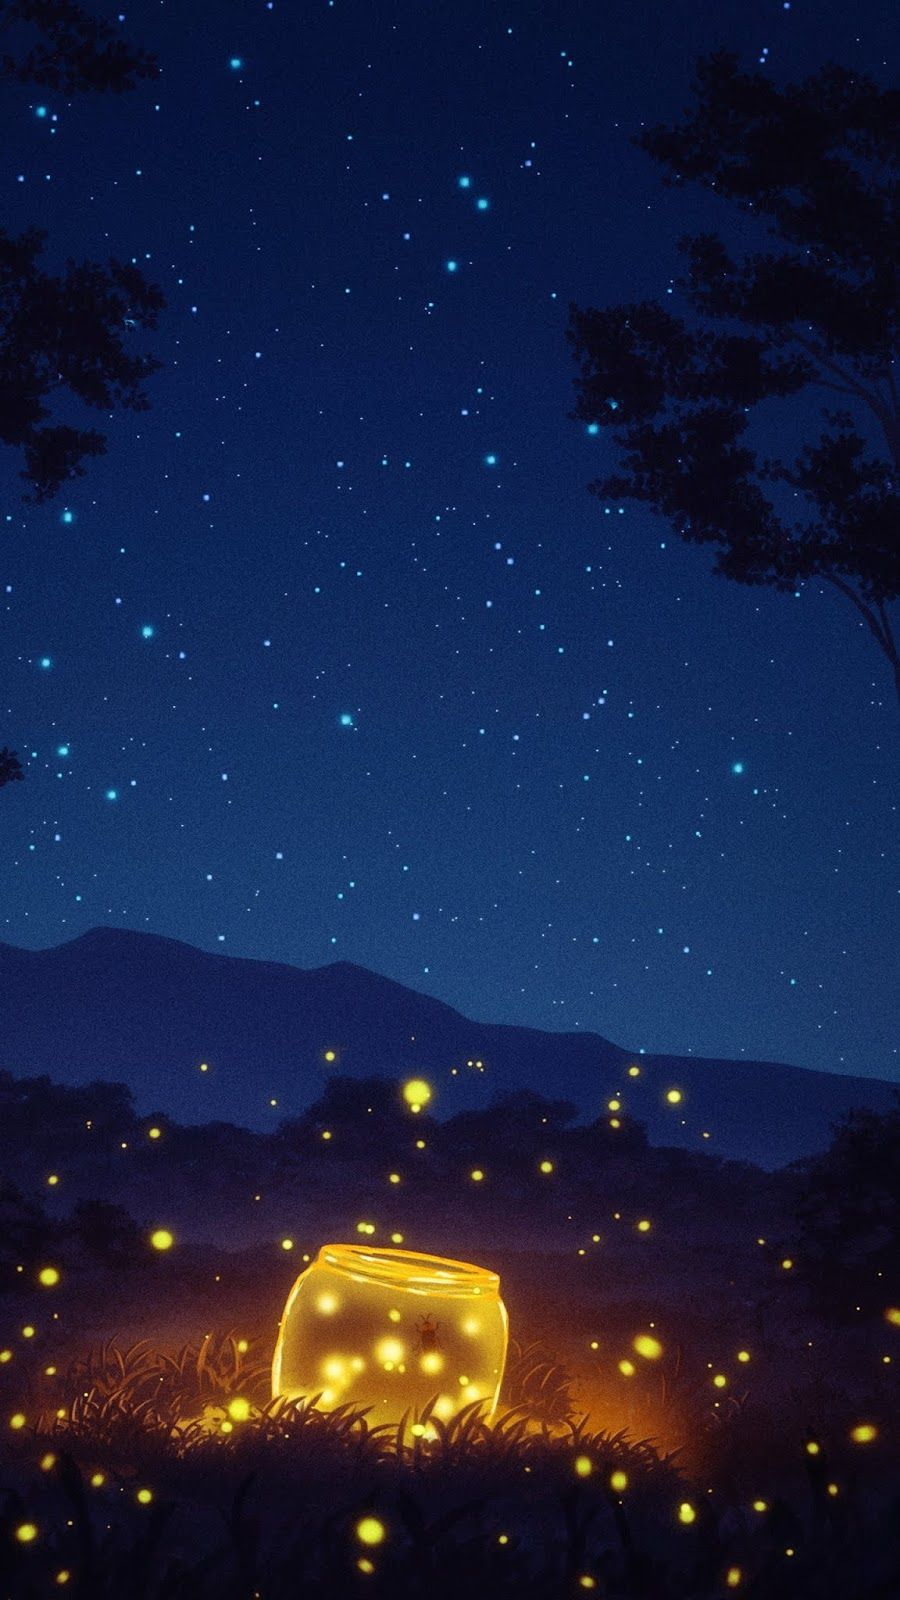 Night Wallpaper Hd For Mobile   900x1600   Download HD Wallpaper 900x1600